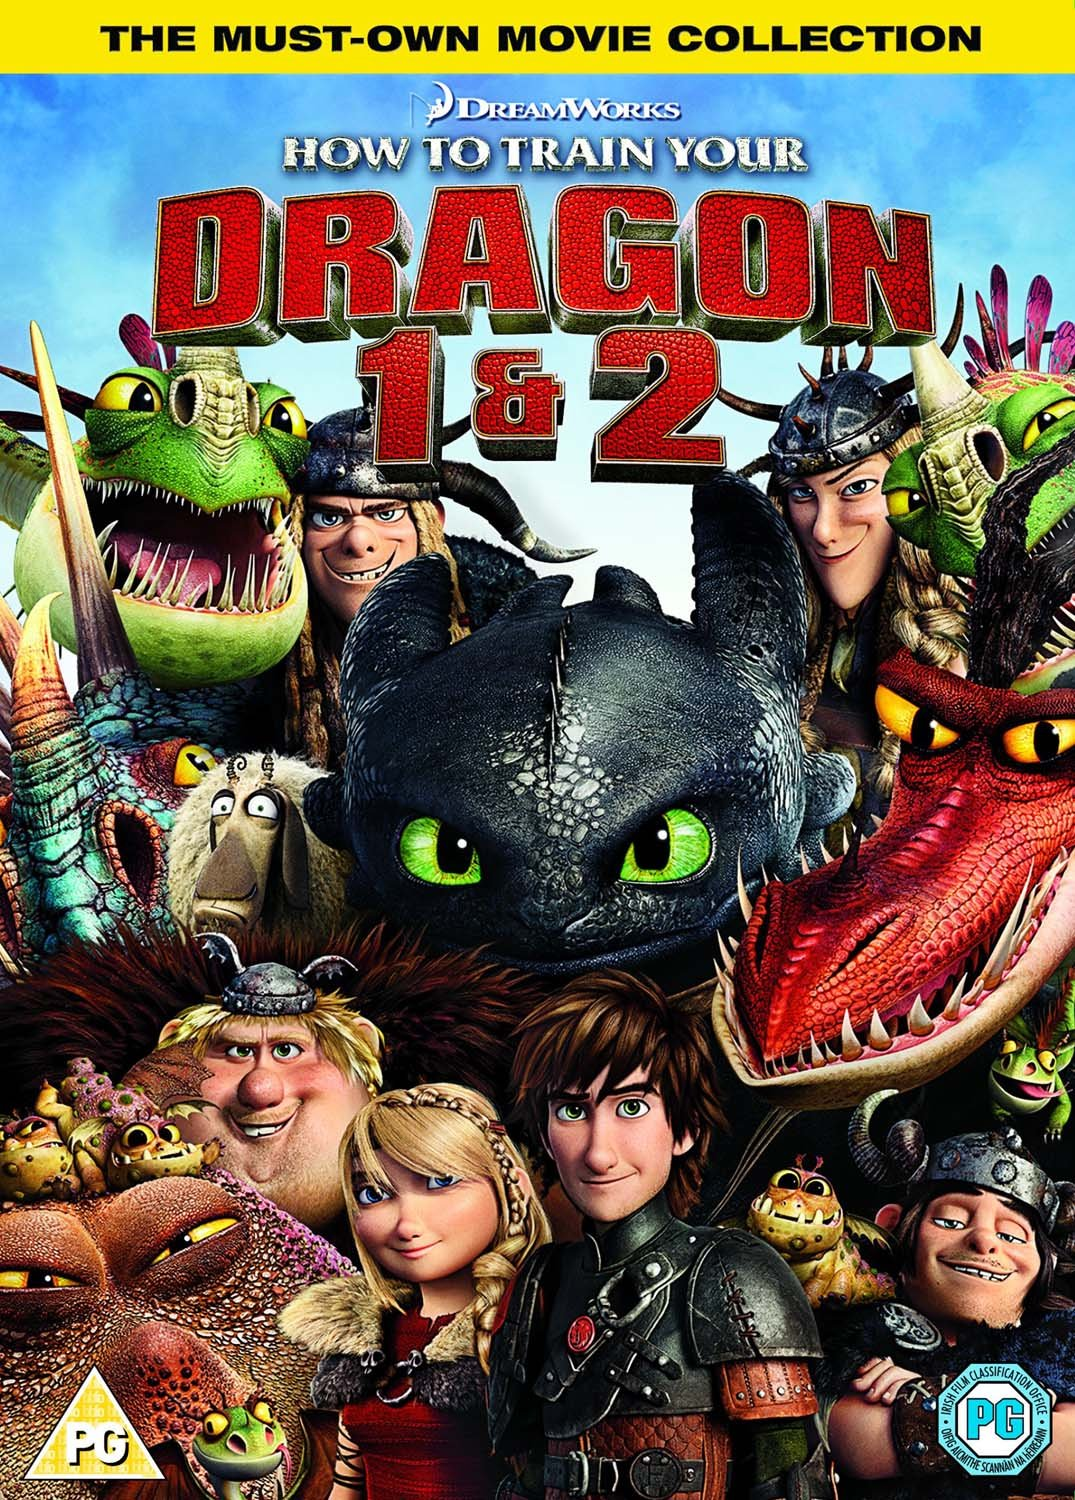 How to train your dragon how to train your dragon 2 double pack how to train your dragon how to train your dragon 2 double pack dvd amazon dean deblois chris sanders bonnie arnold adam f goldberg ccuart Image collections